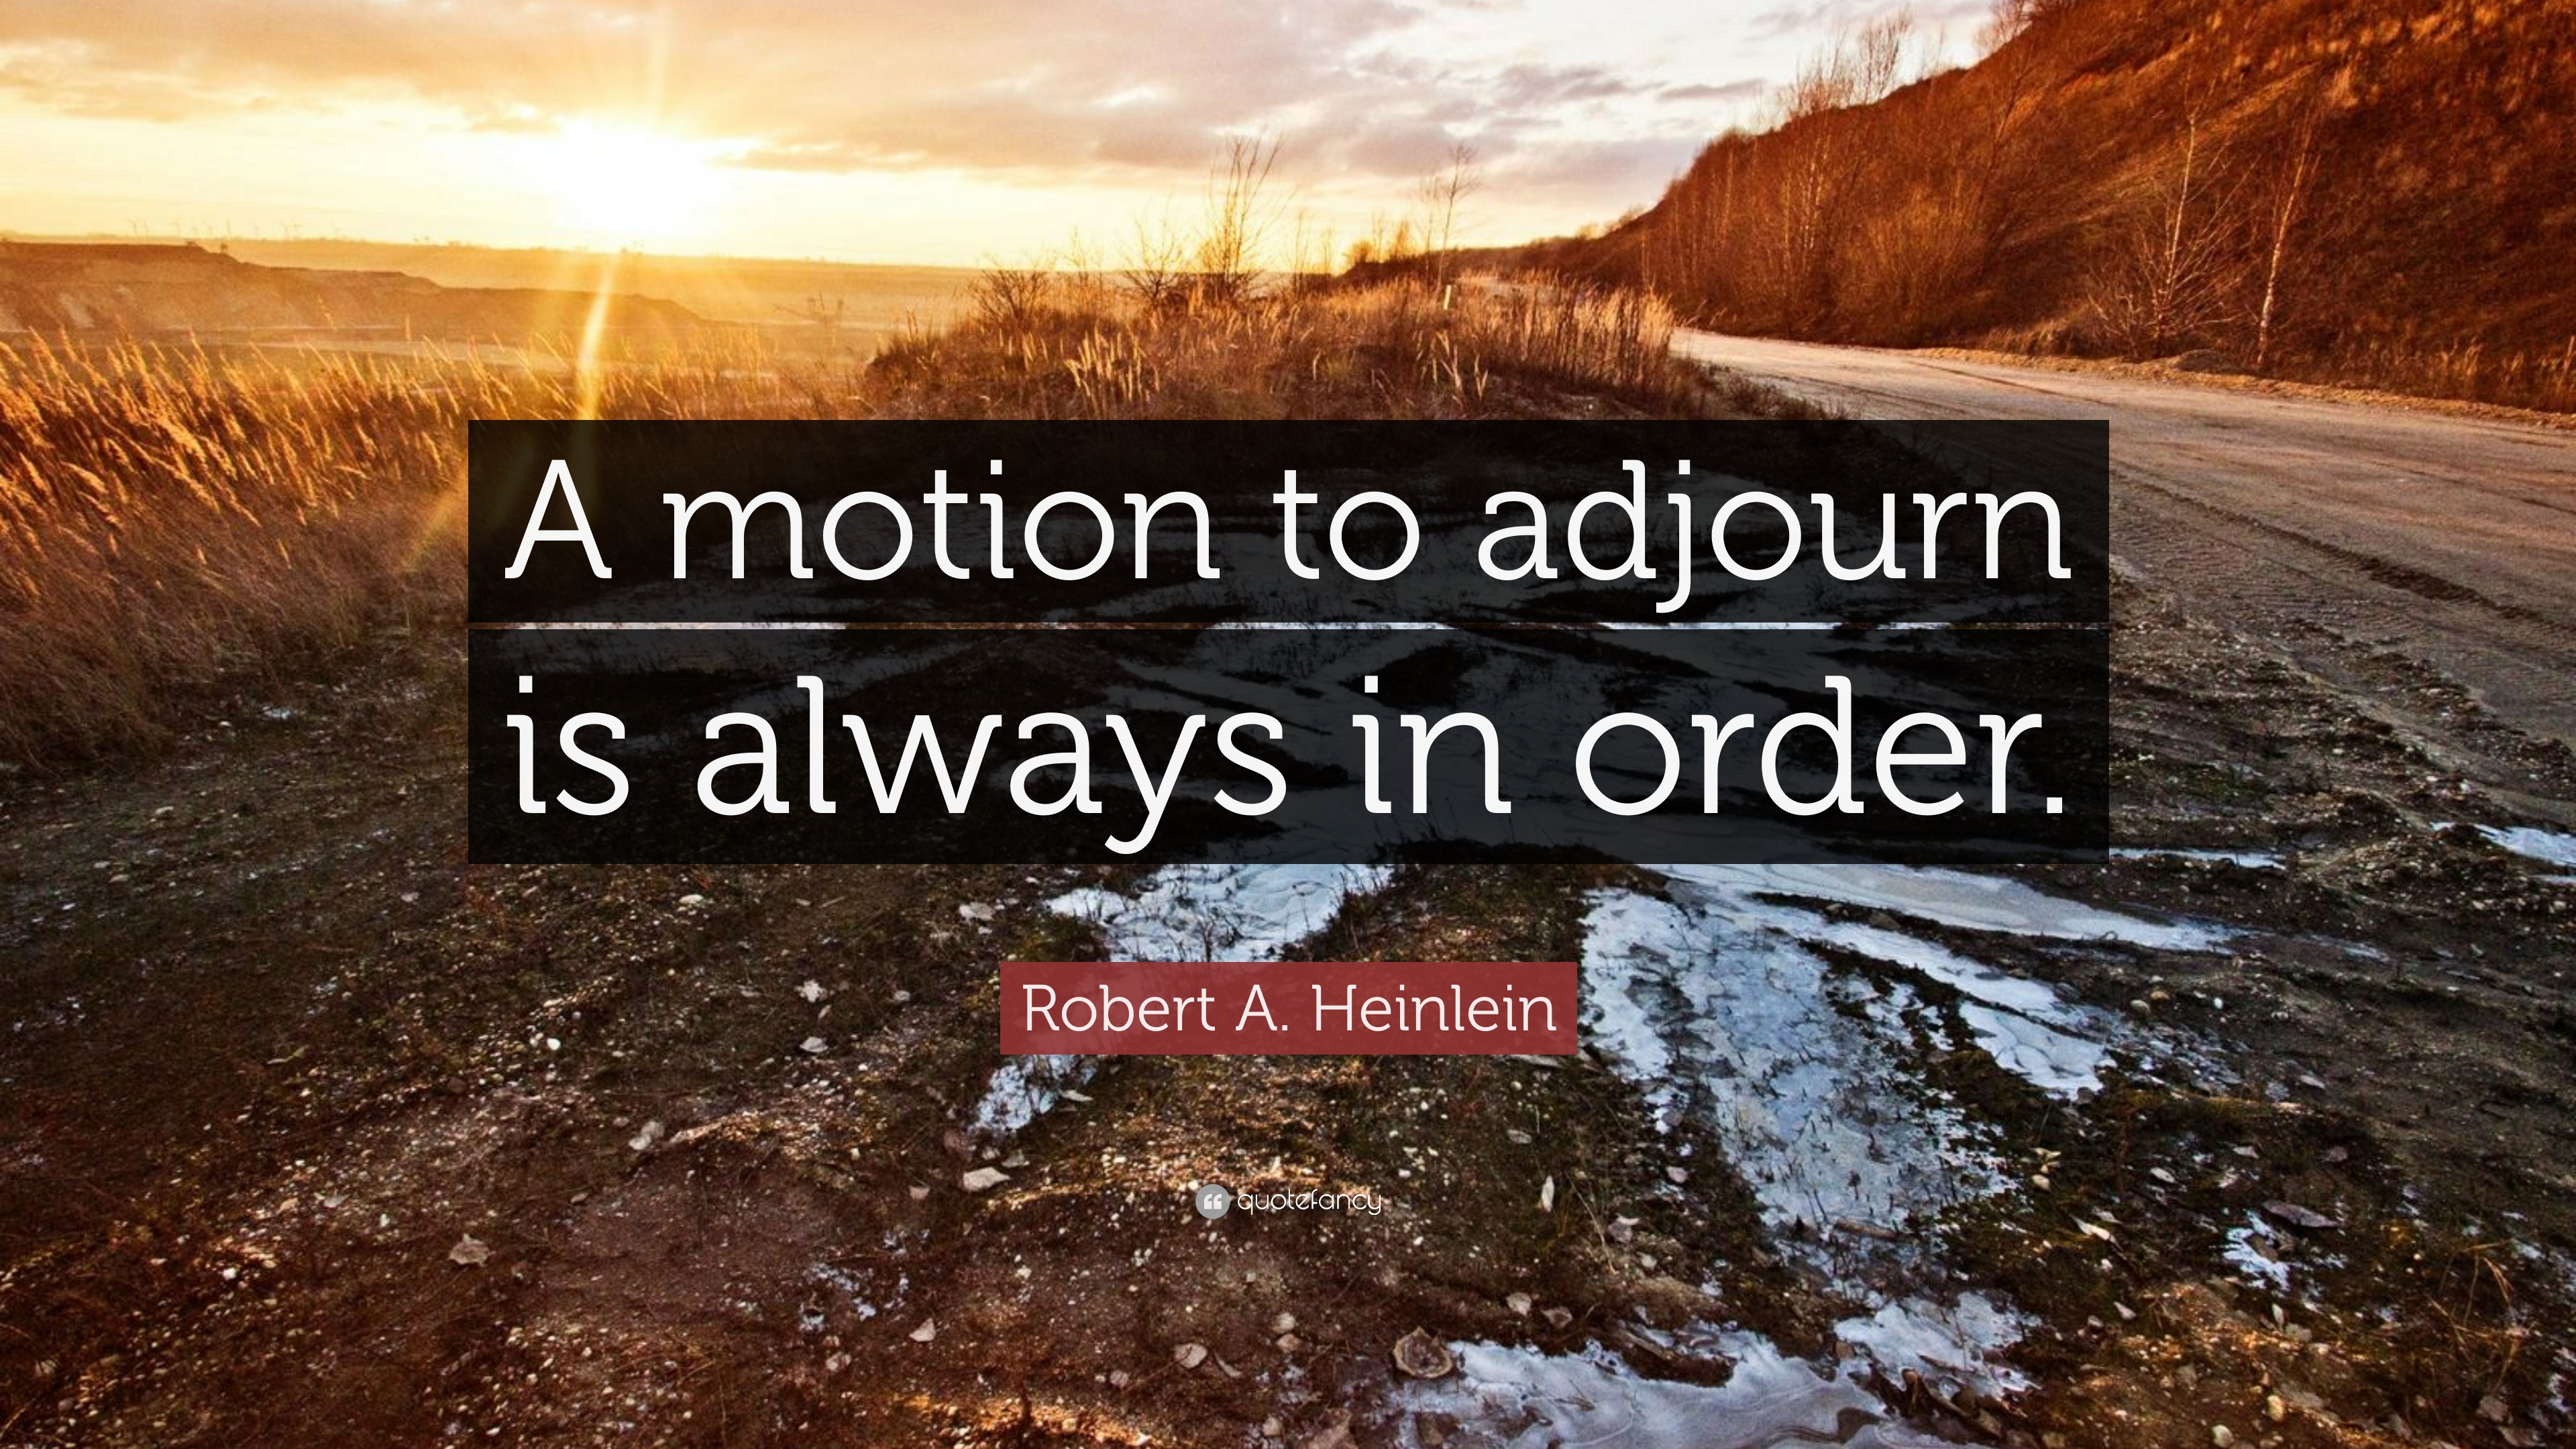 robert a heinlein quote a motion to adjourn is always in order